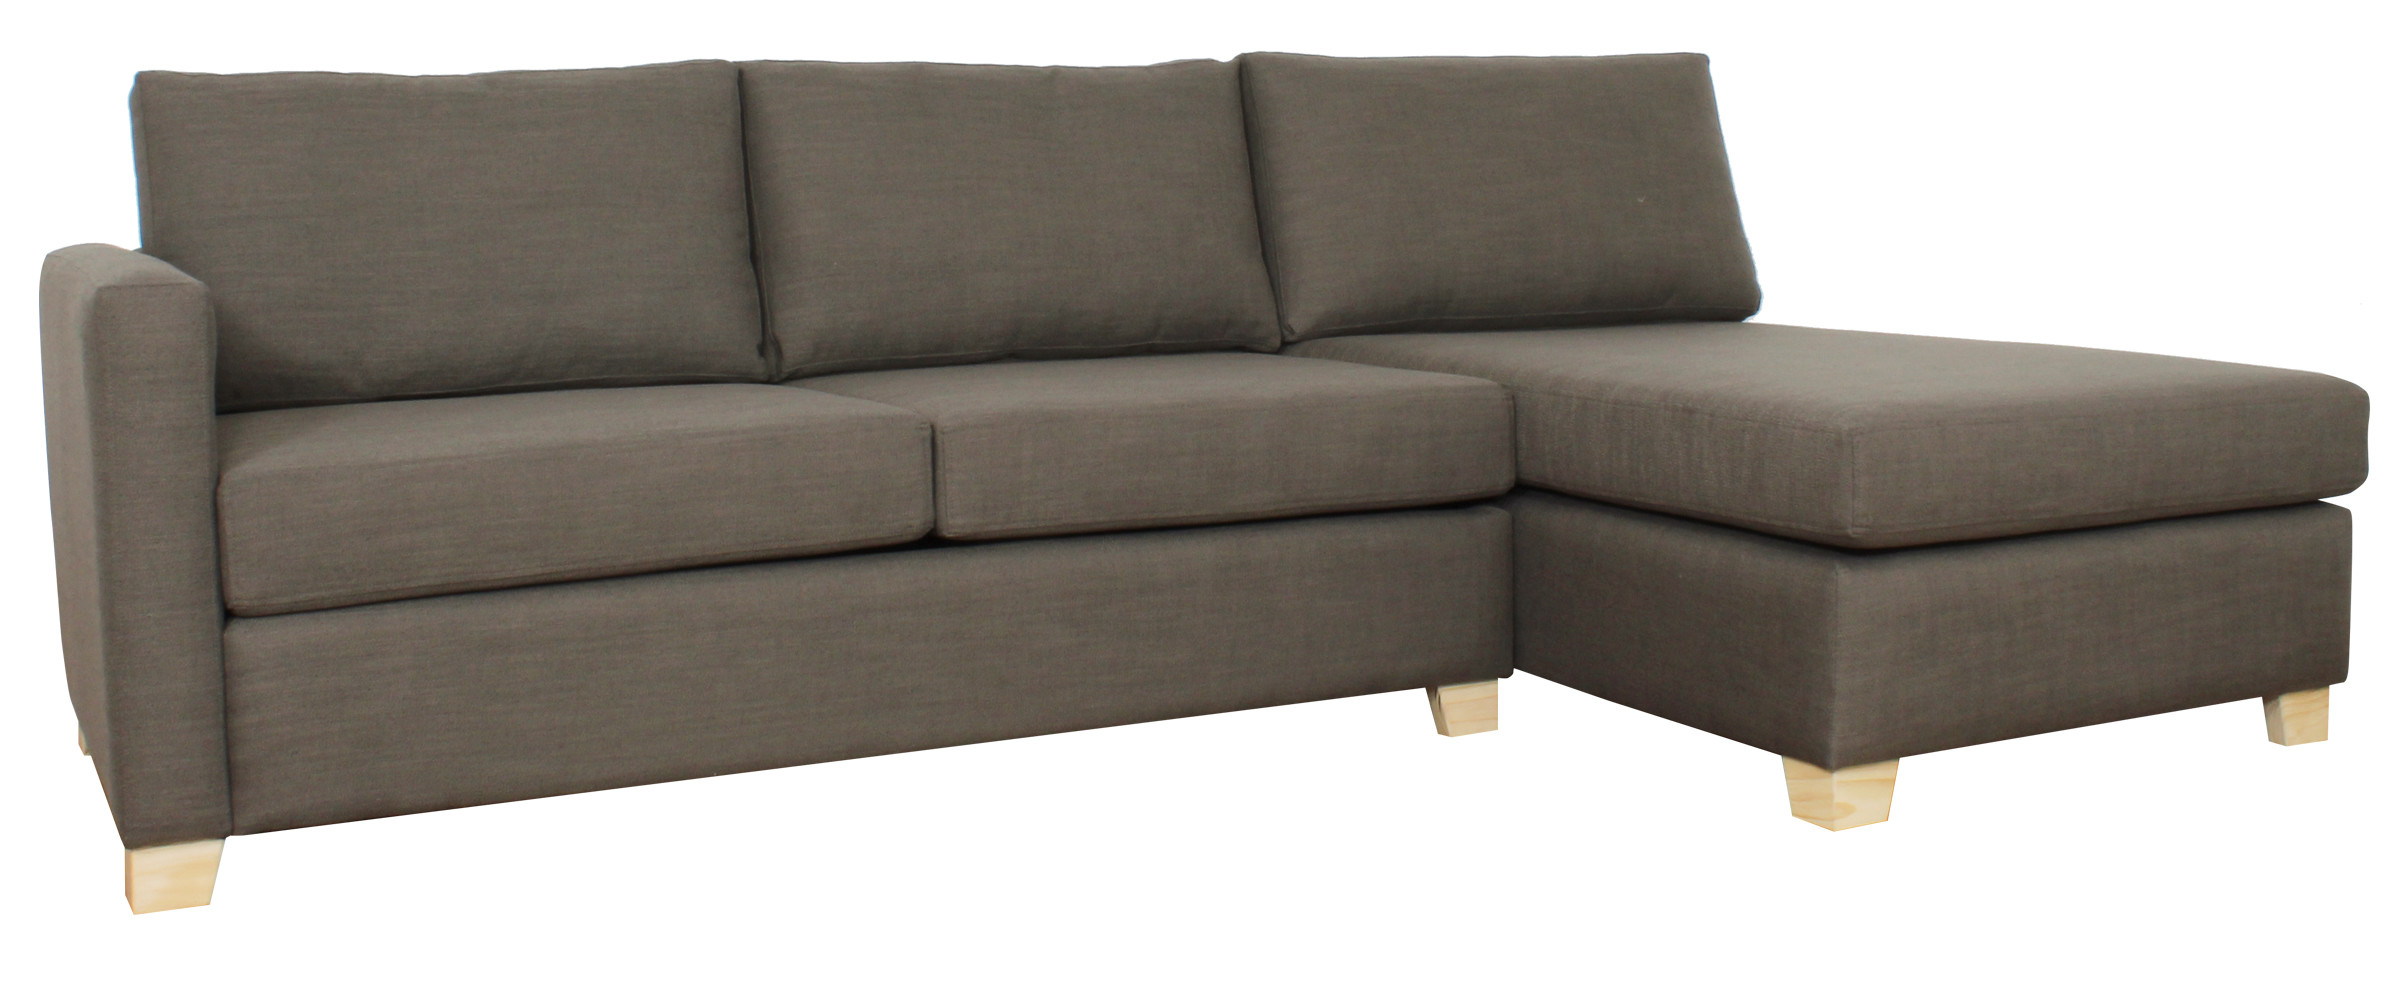 Sofa Cama New York 22